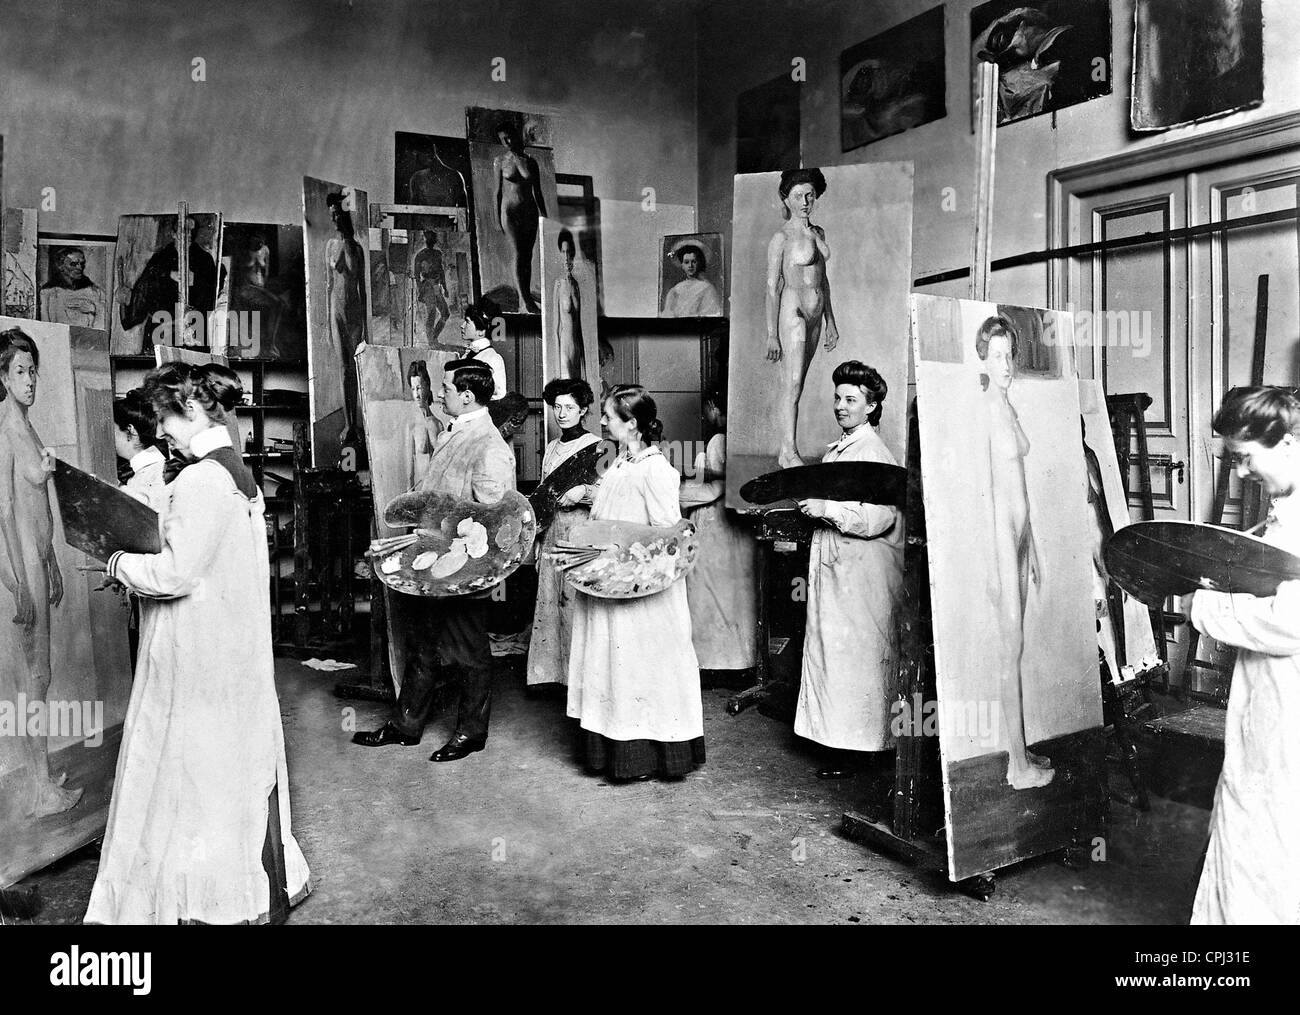 Students of the Academy of Fine Arts while painting, 1901 - Stock Image